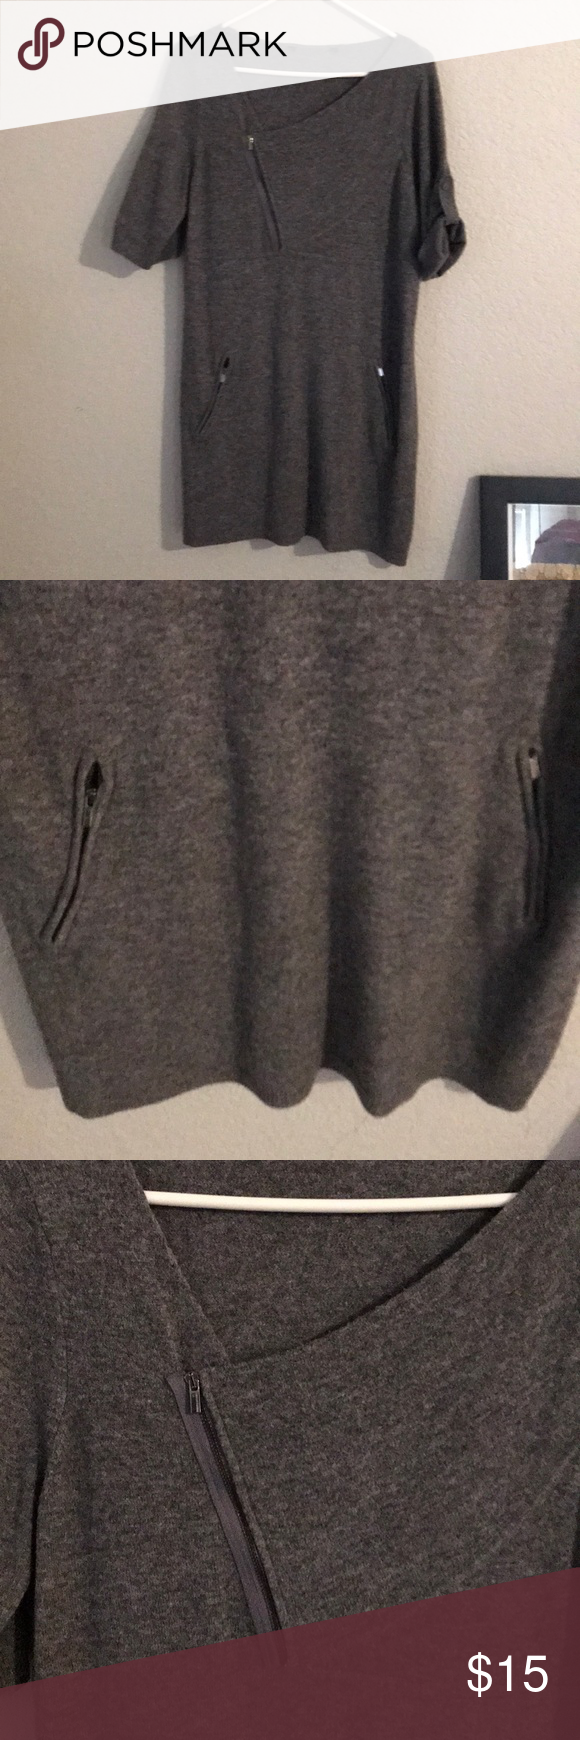 Sweater tunic Stylish gray sweater tunic! Zippered pockets. Can unzip neckline too. Sleeves can be worn buttoned up or left down. No tag bc it was itchy! Tops Tunics